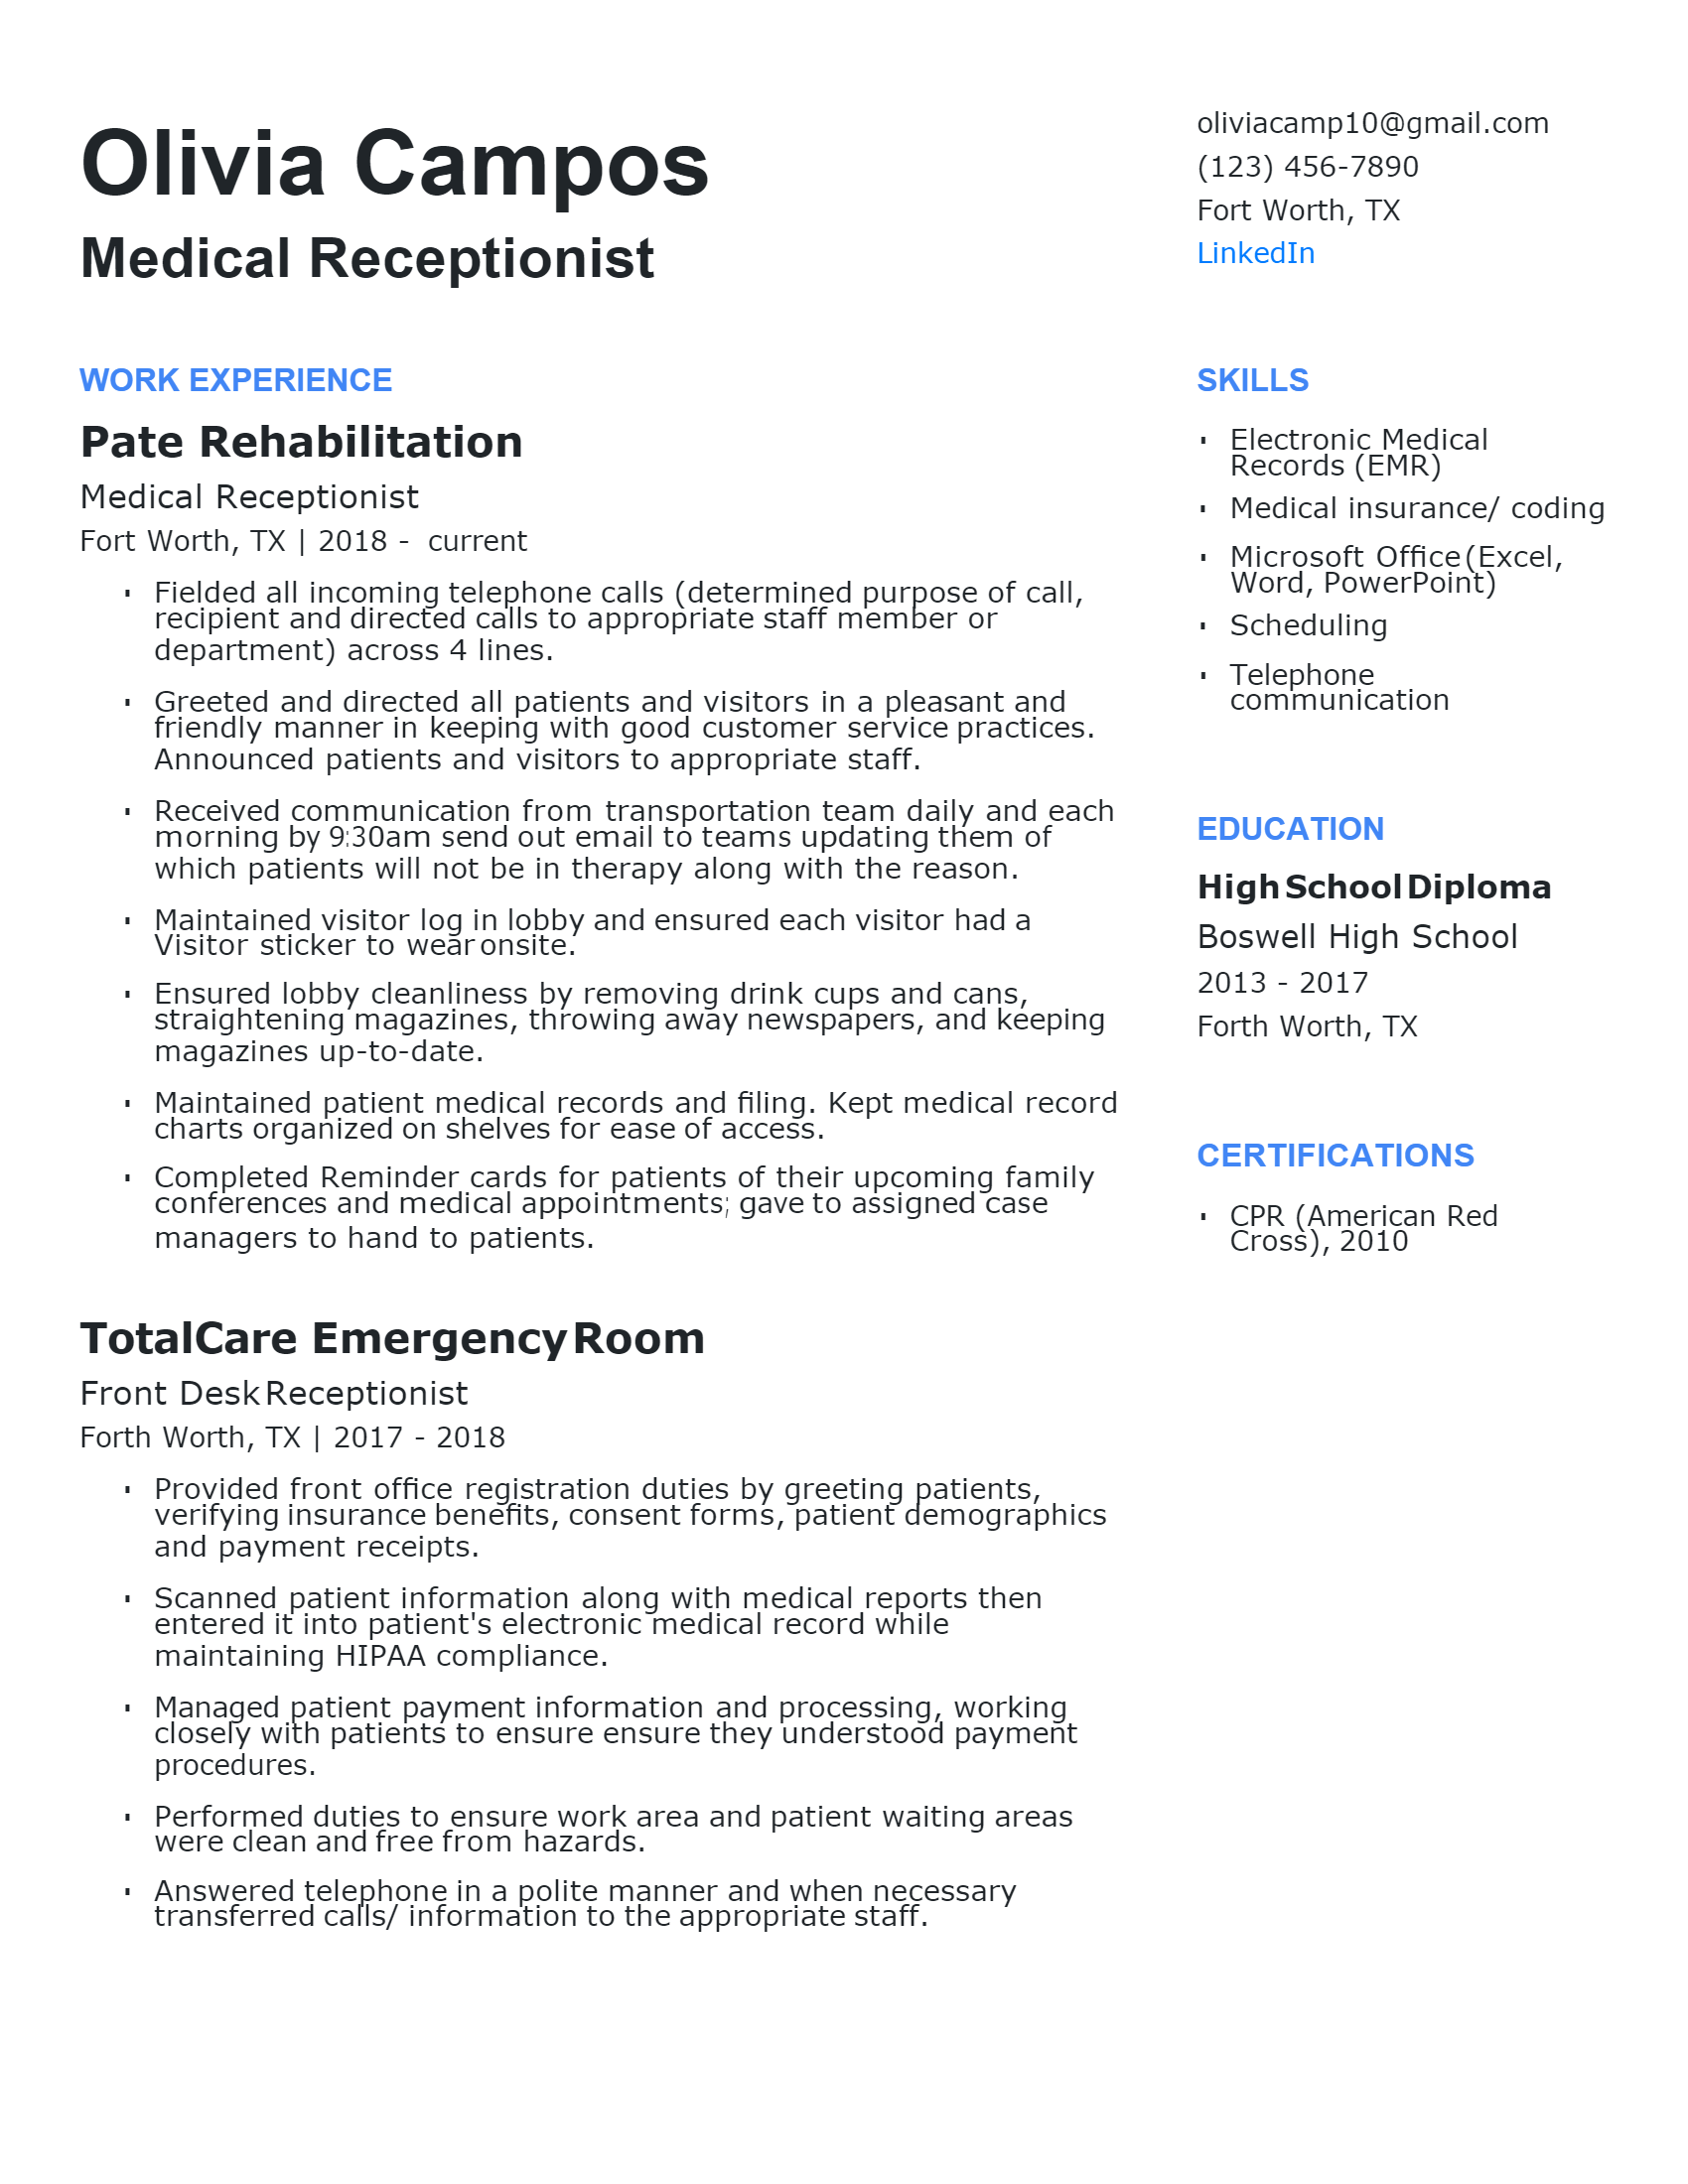 Experienced Medical Receptionist